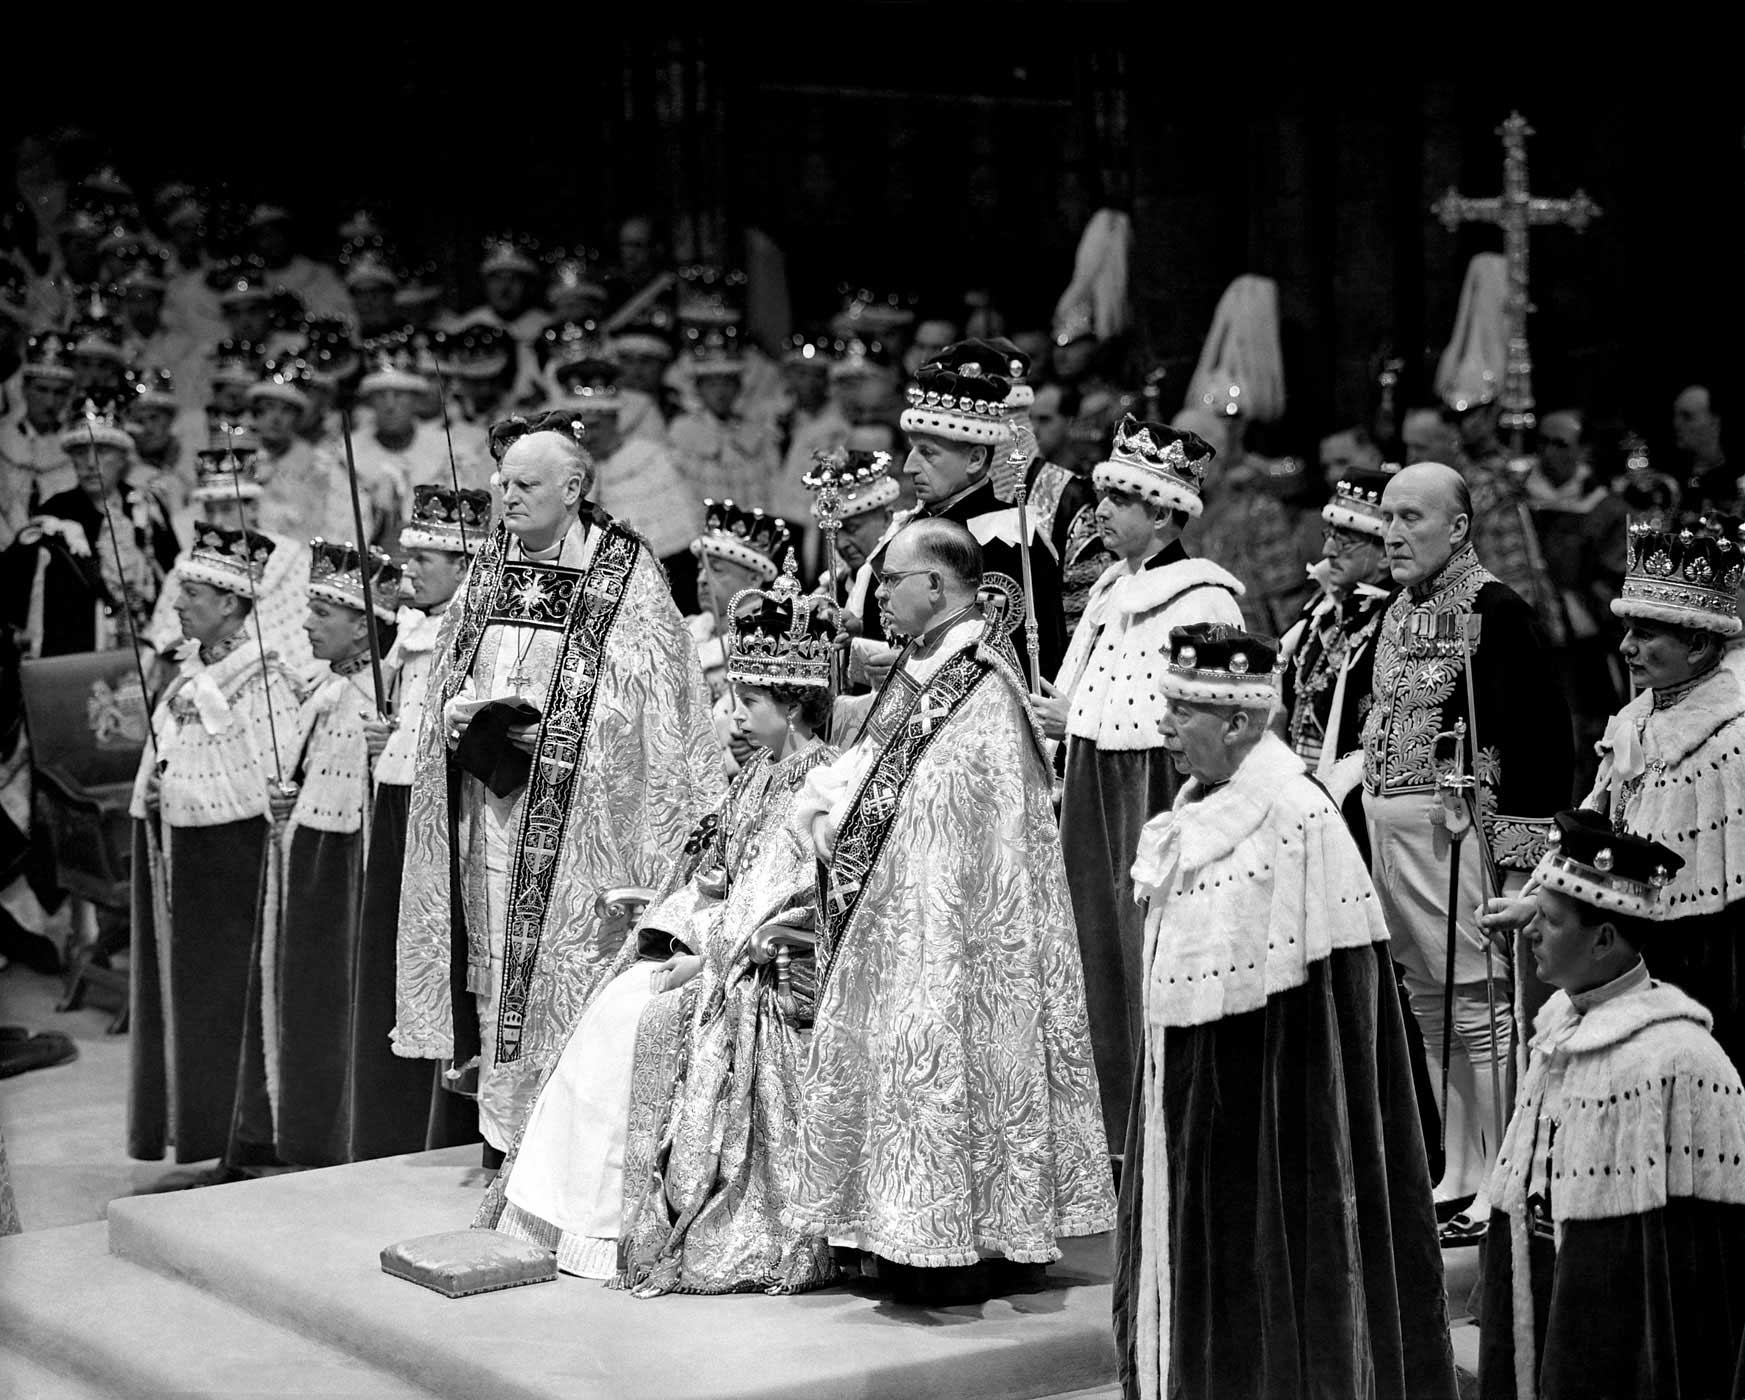 On June 2, 1953, the Queen's coronation took place at Westminster Abbey in London. It marked the first time a royal coronation was televised.